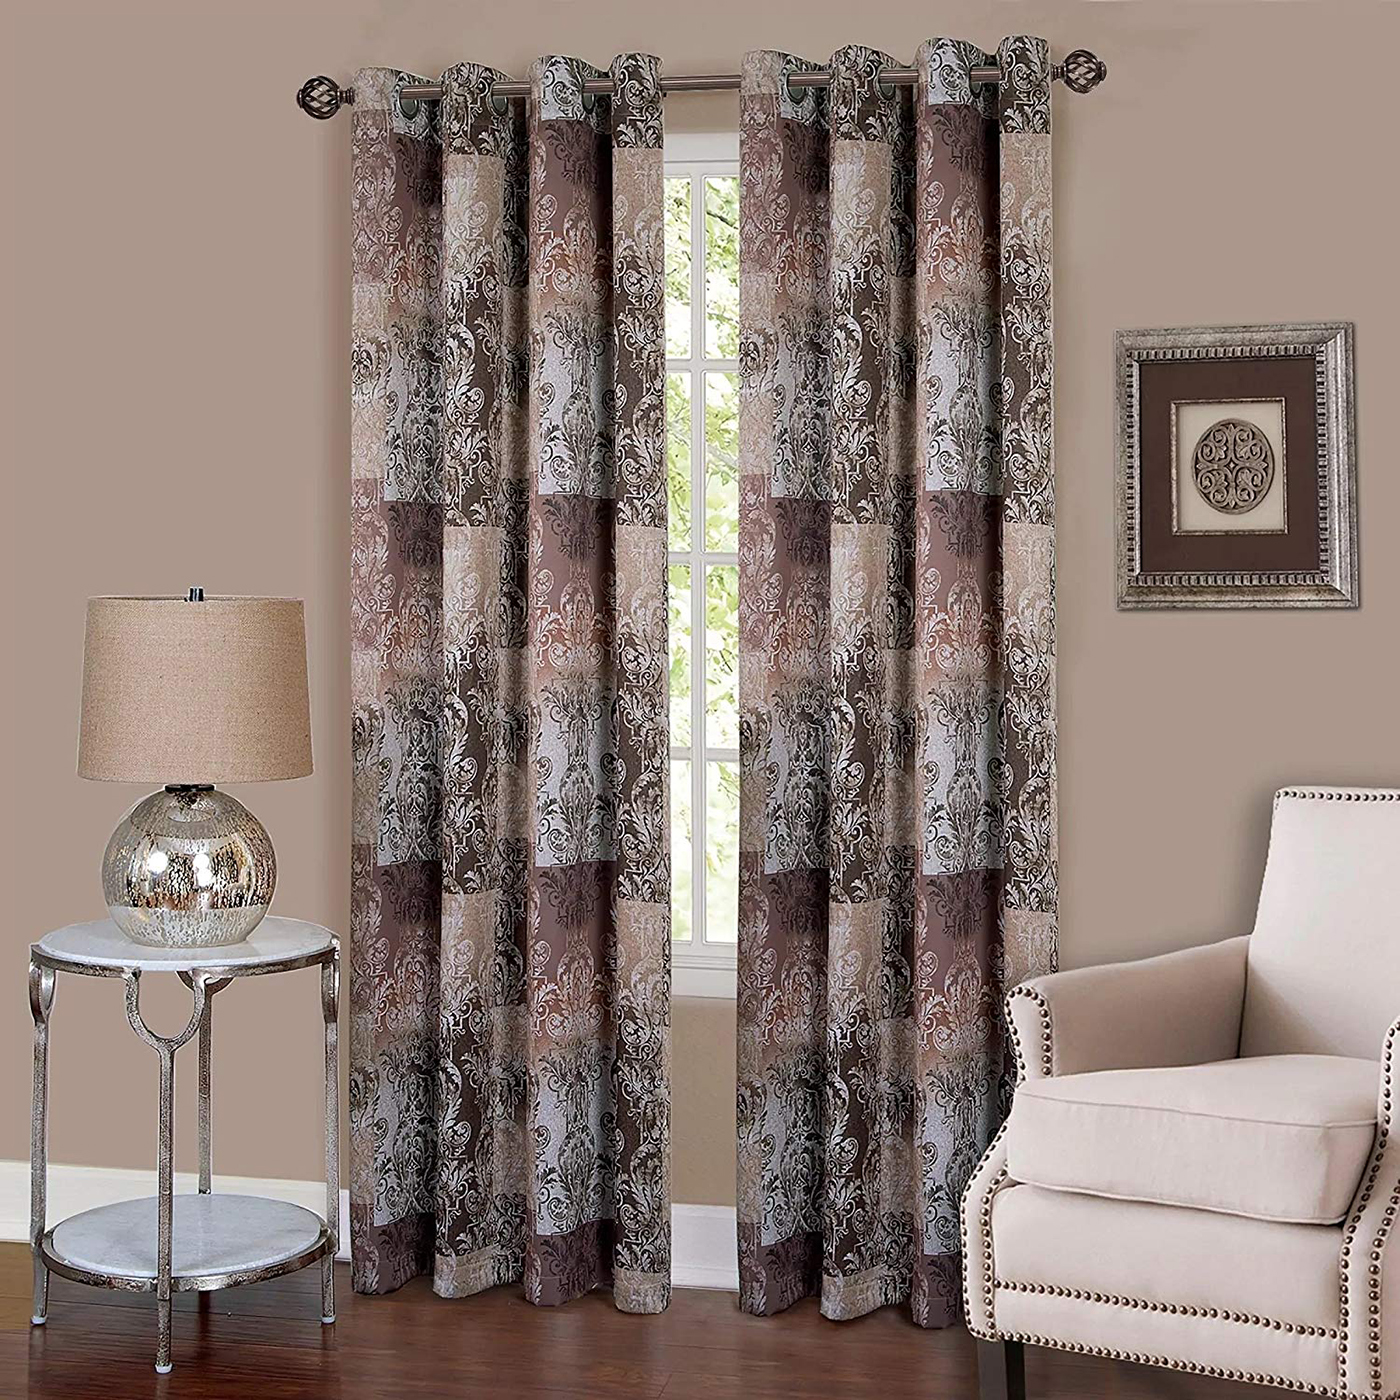 Curtain-Rod-Decorative-Telescopic-Cafe-Window-Drapery-Rods-Set-w-Modern-Finials thumbnail 21